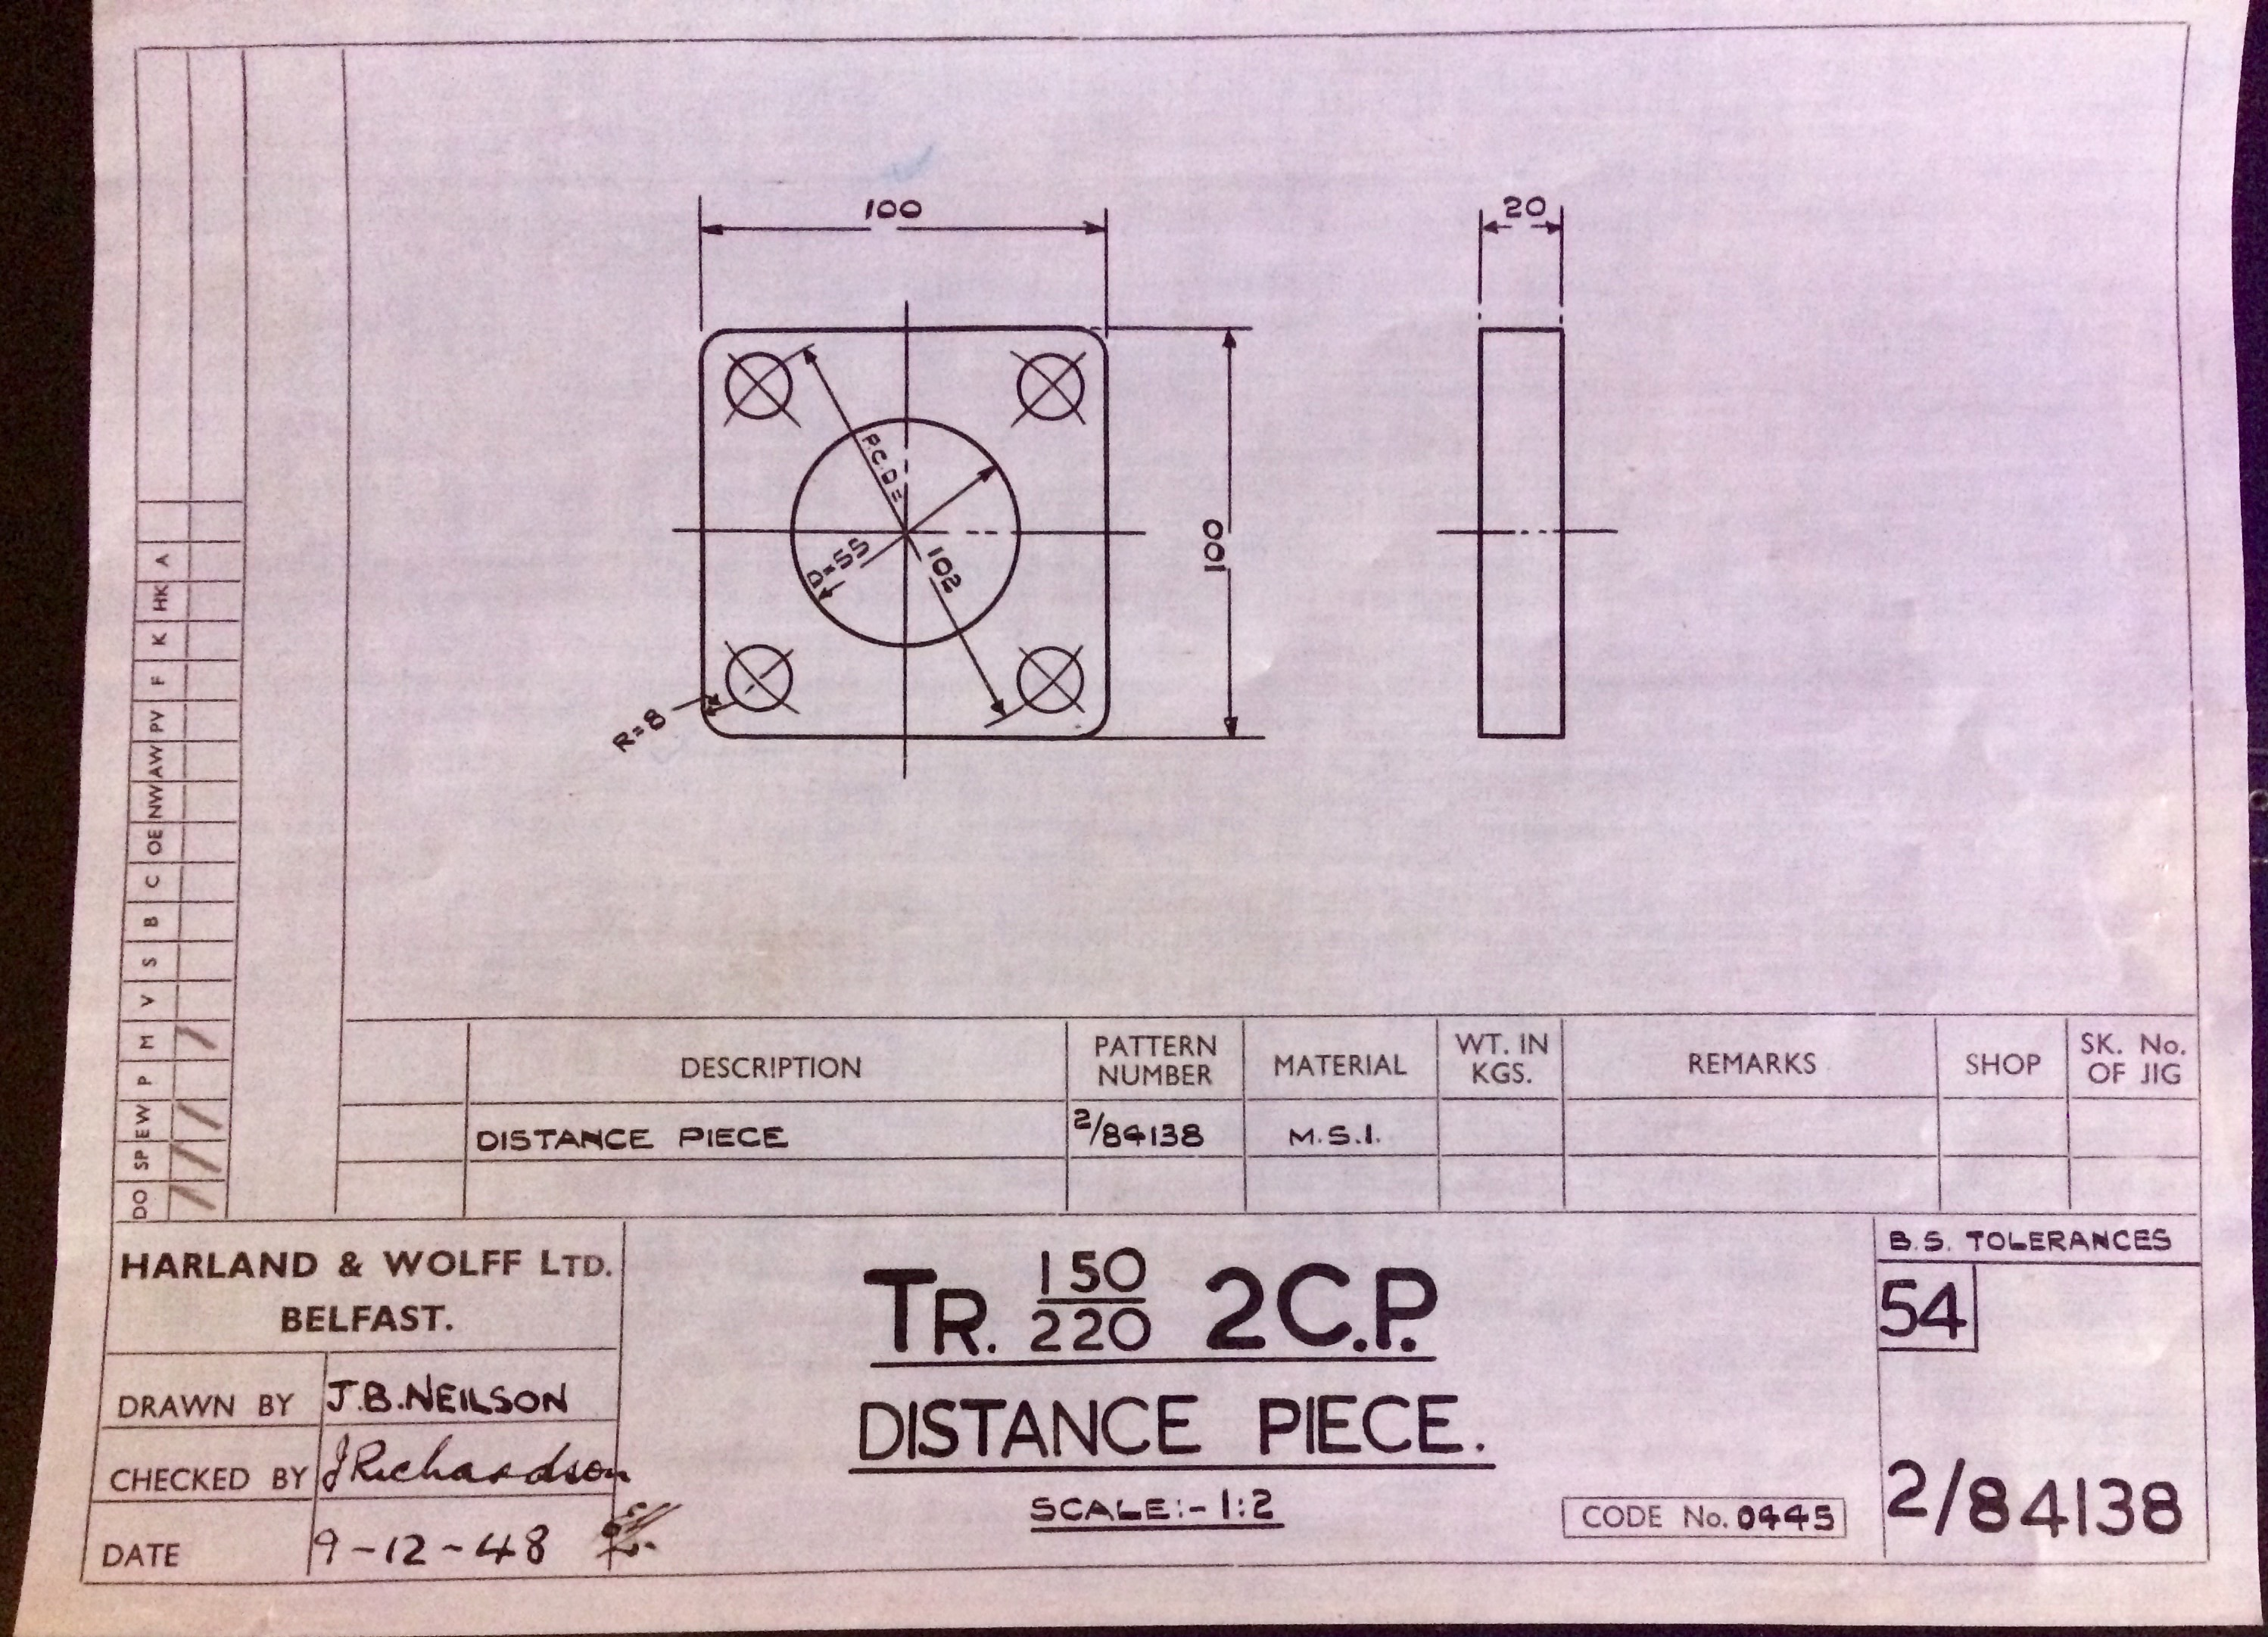 Harland & Wolff Engineering Drawing 35/2/84138